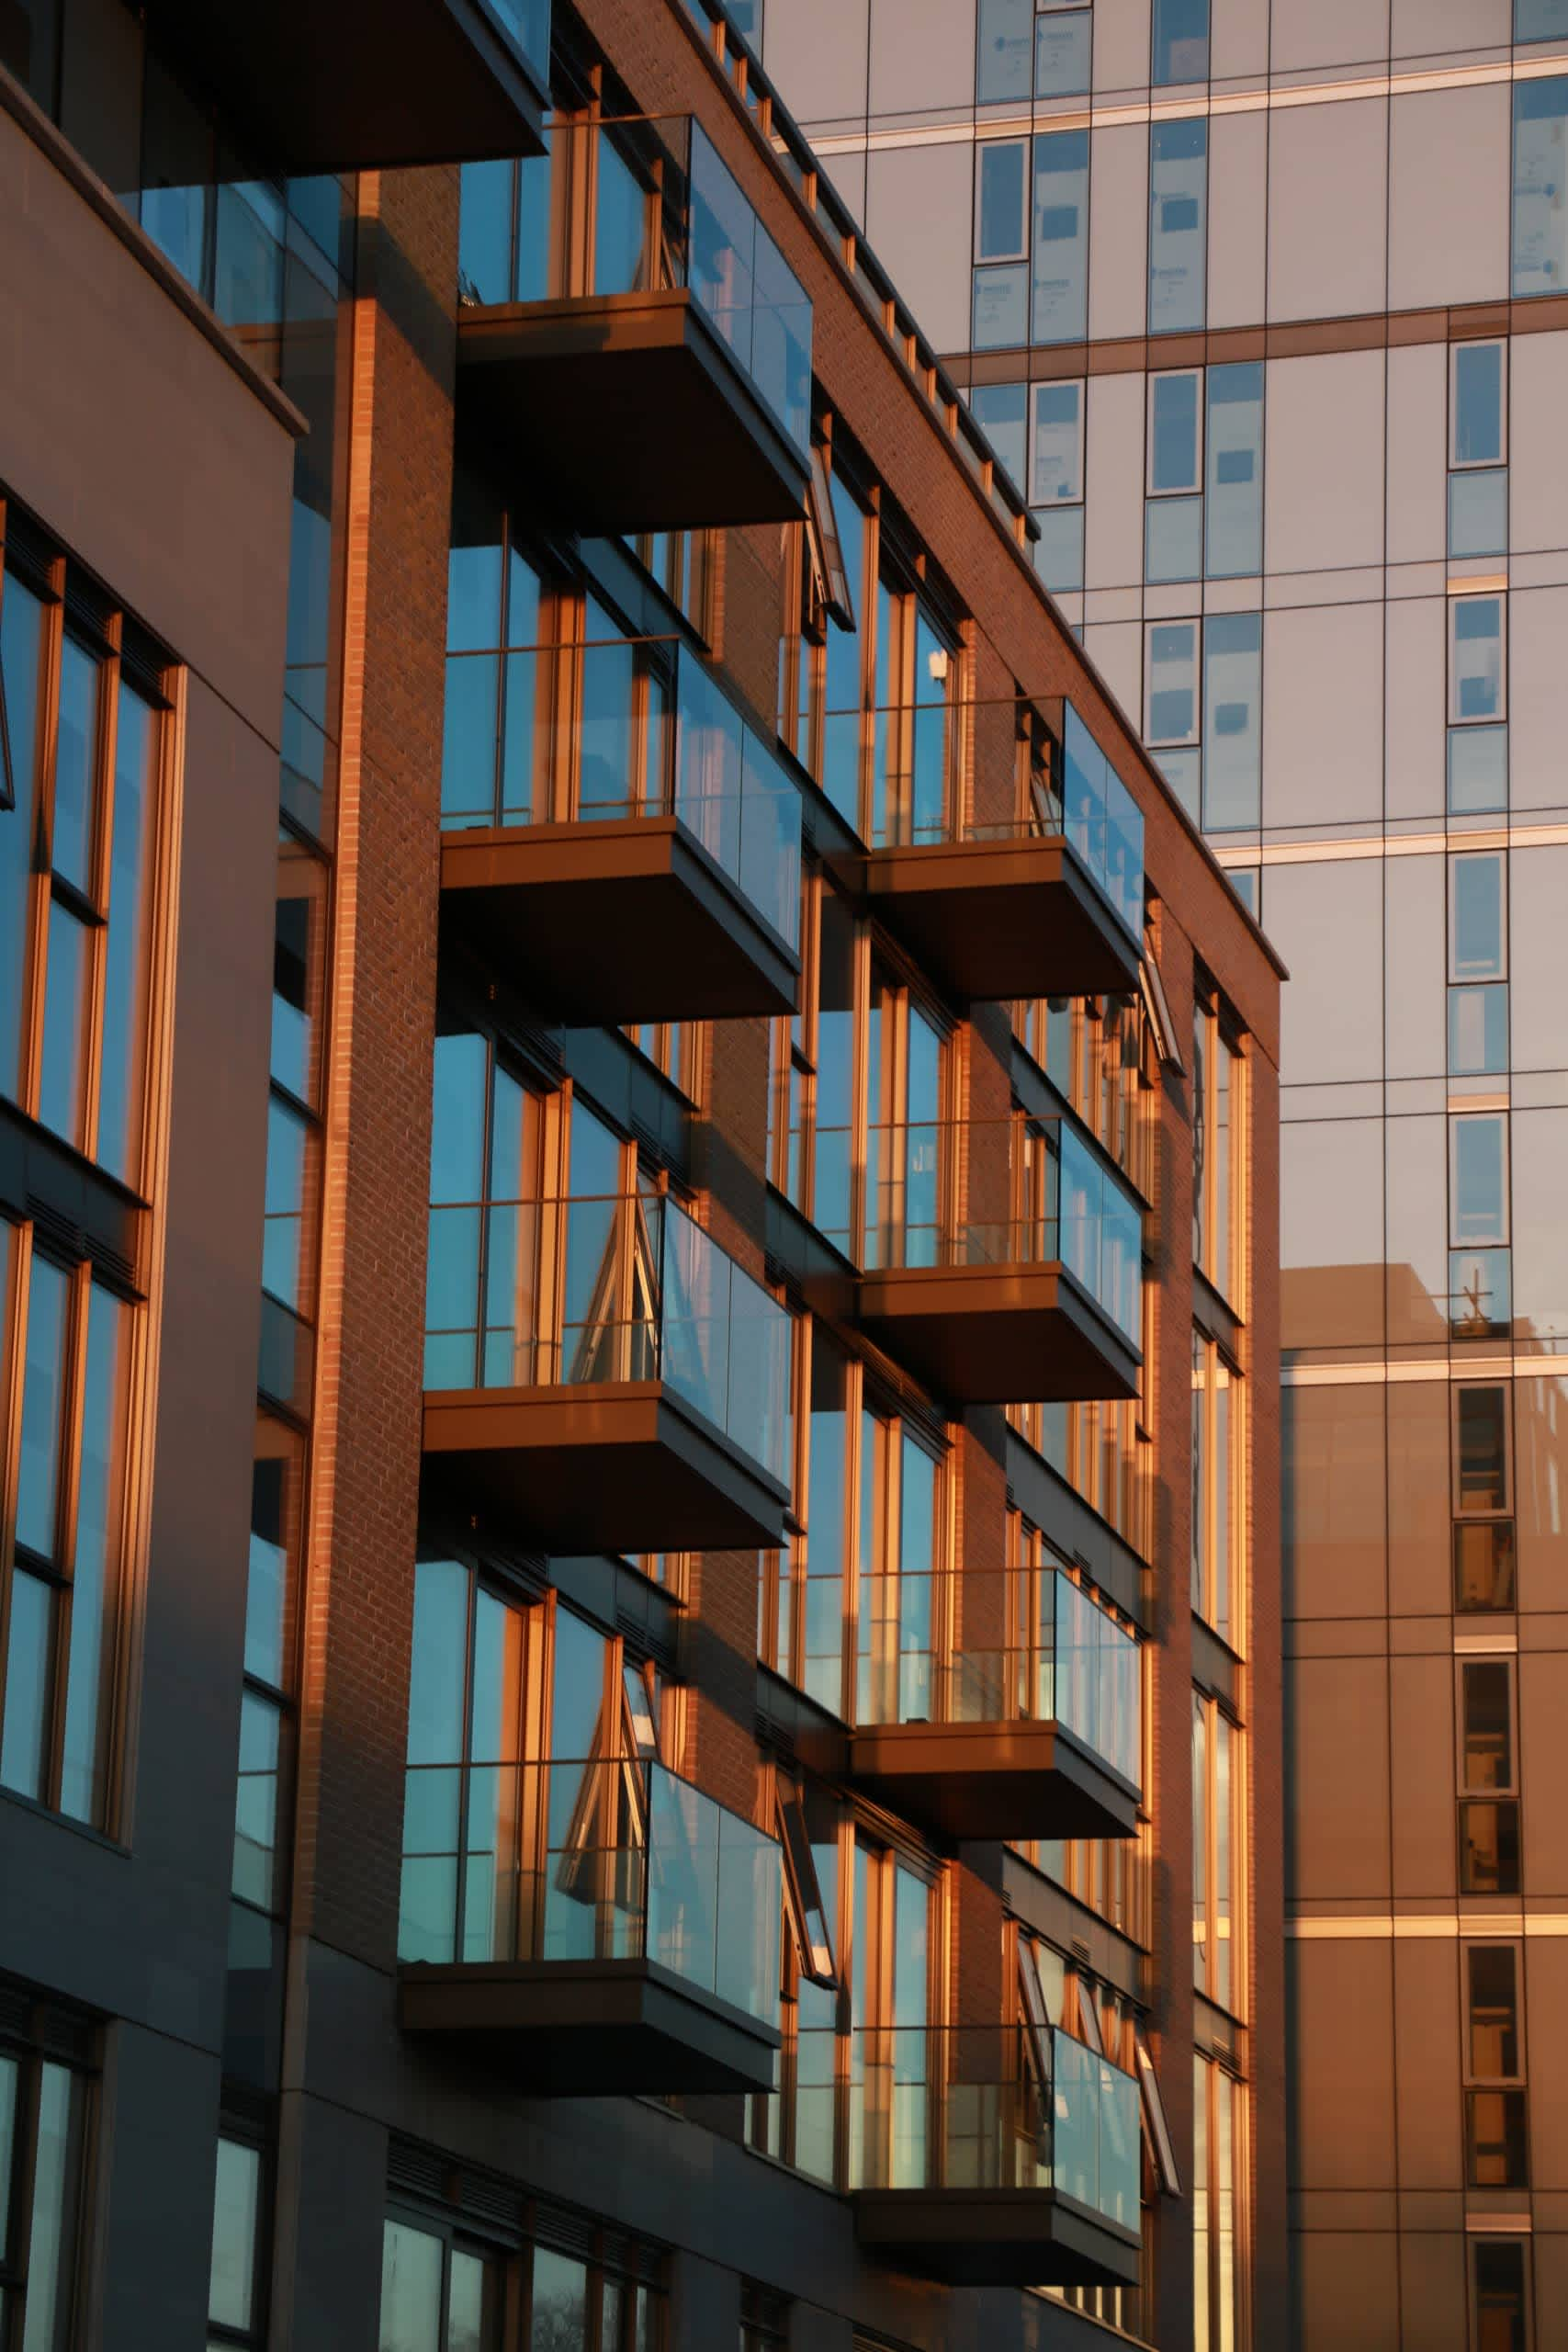 Lillie Square Balconies at Sunset